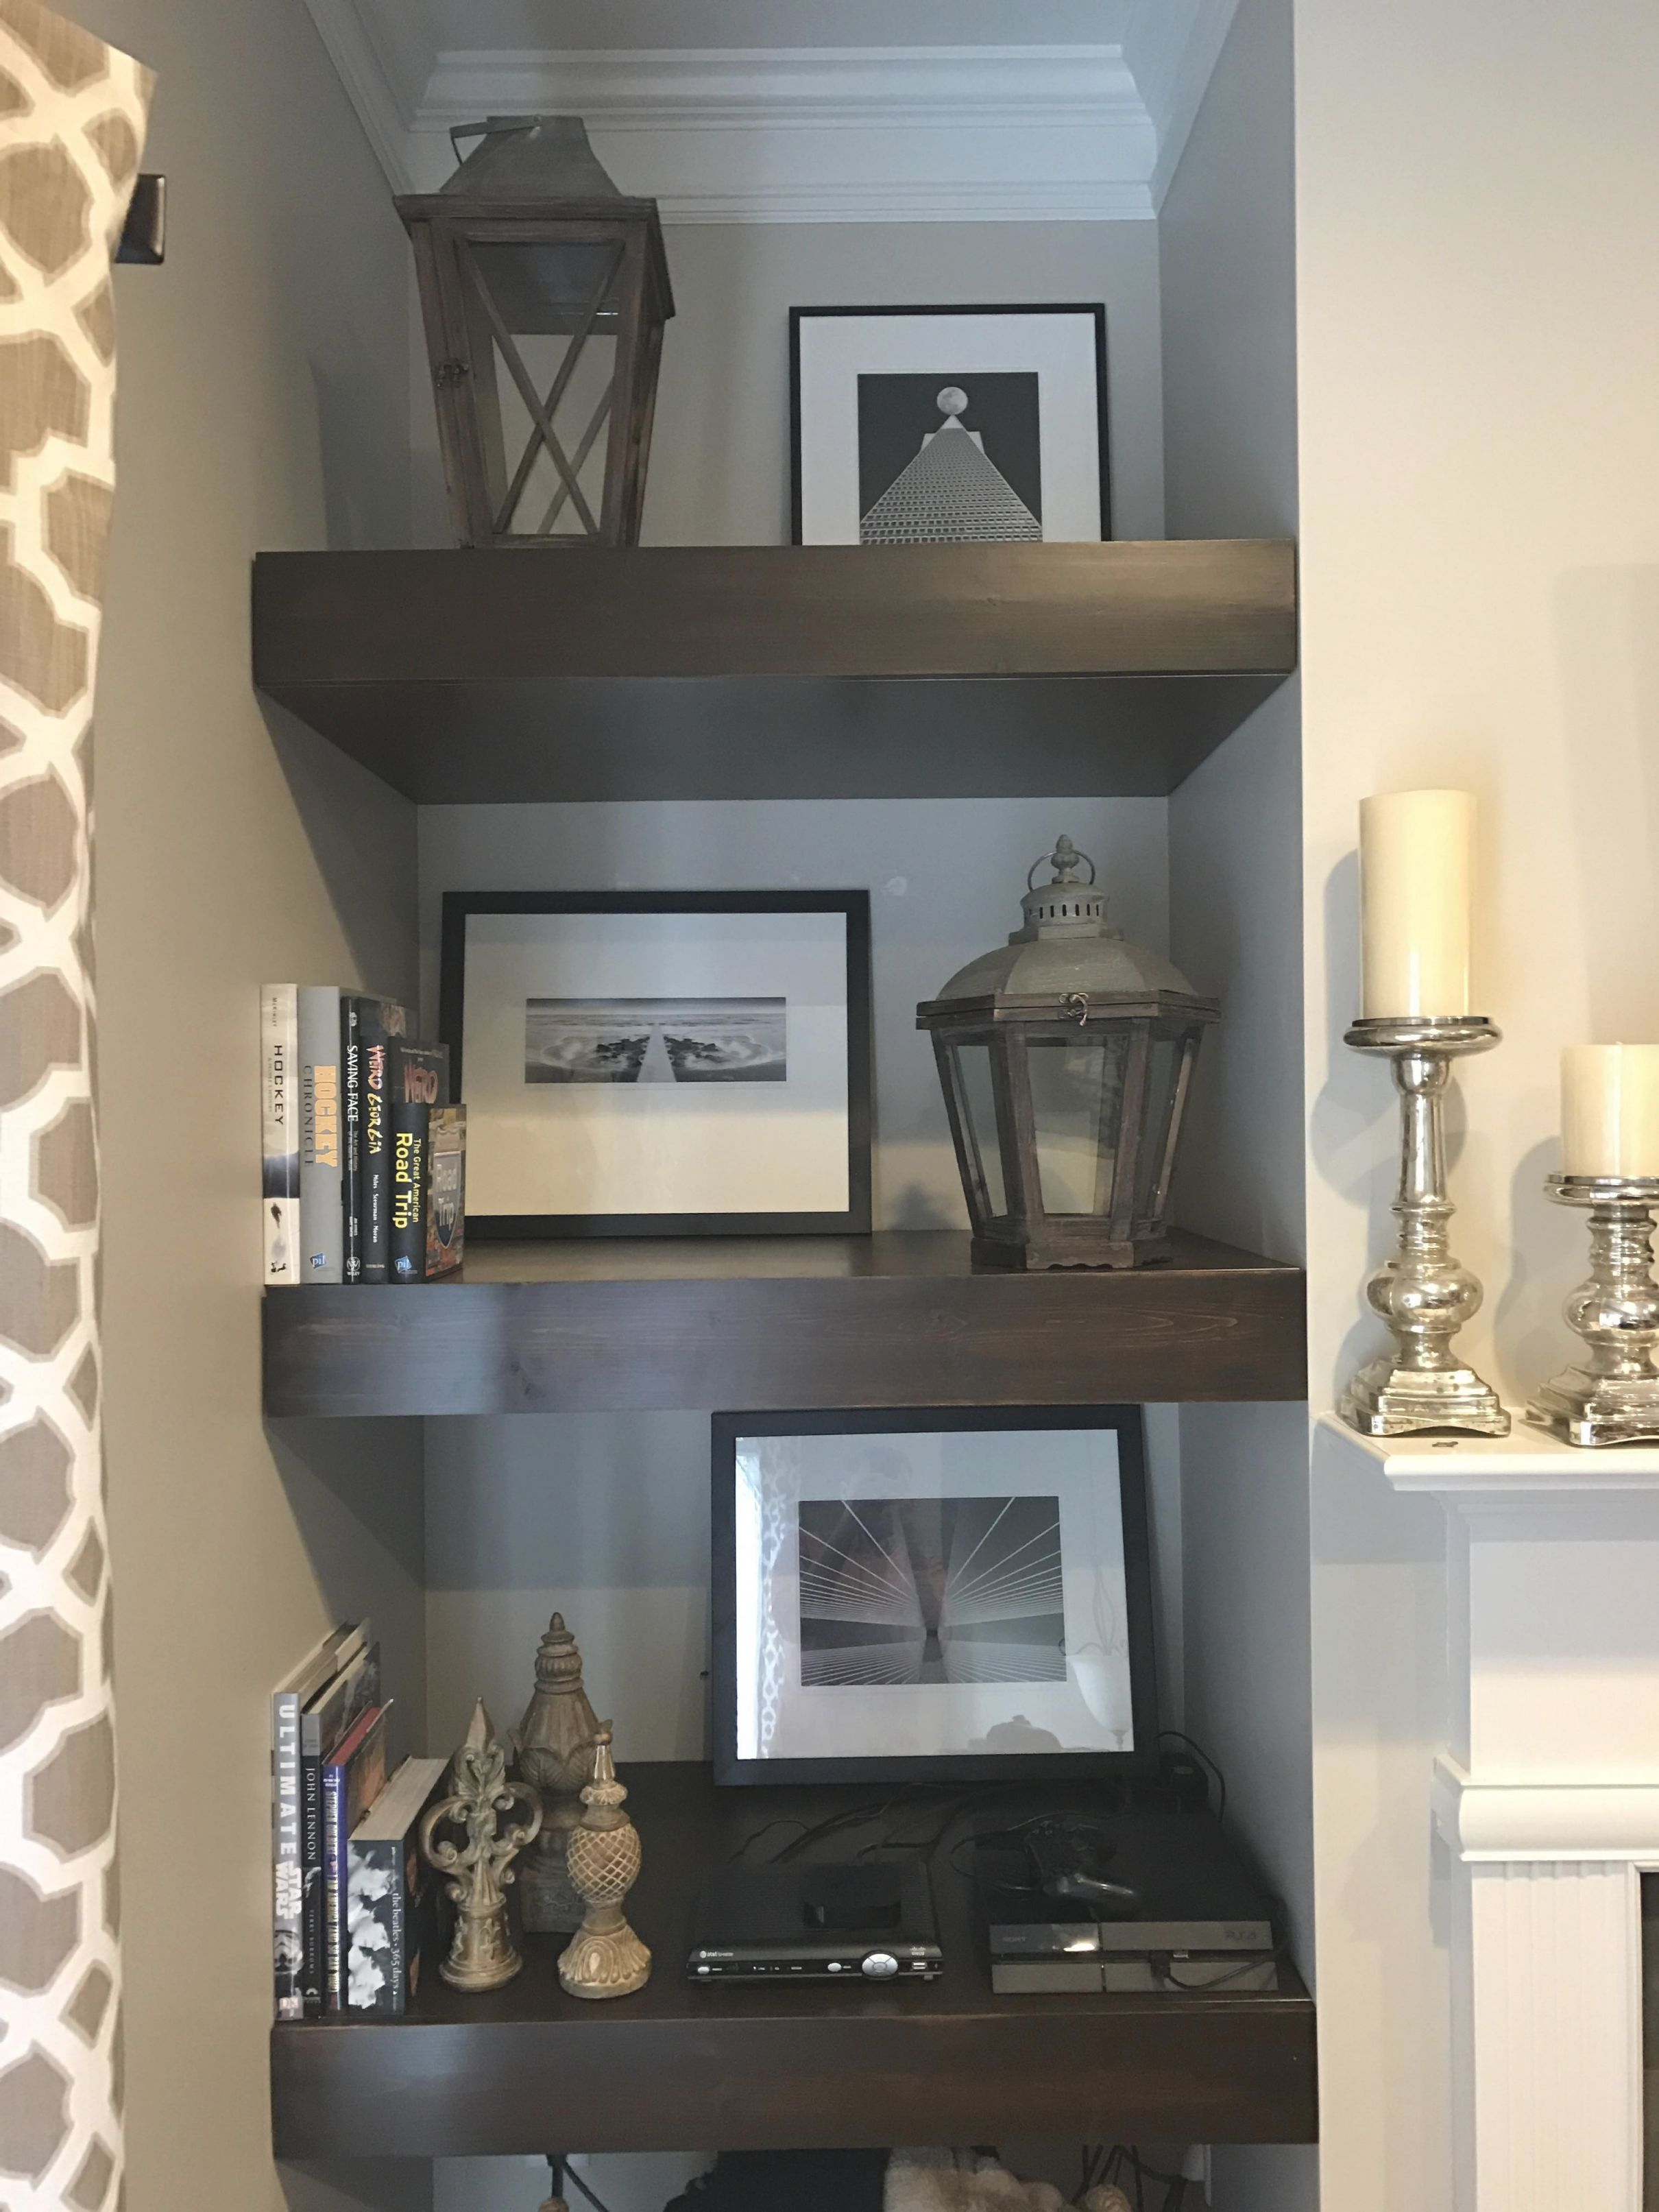 Pinsimply Decorate ® On Interior Design Ideas In 2019 with Unique Decorating Shelves In Living Room